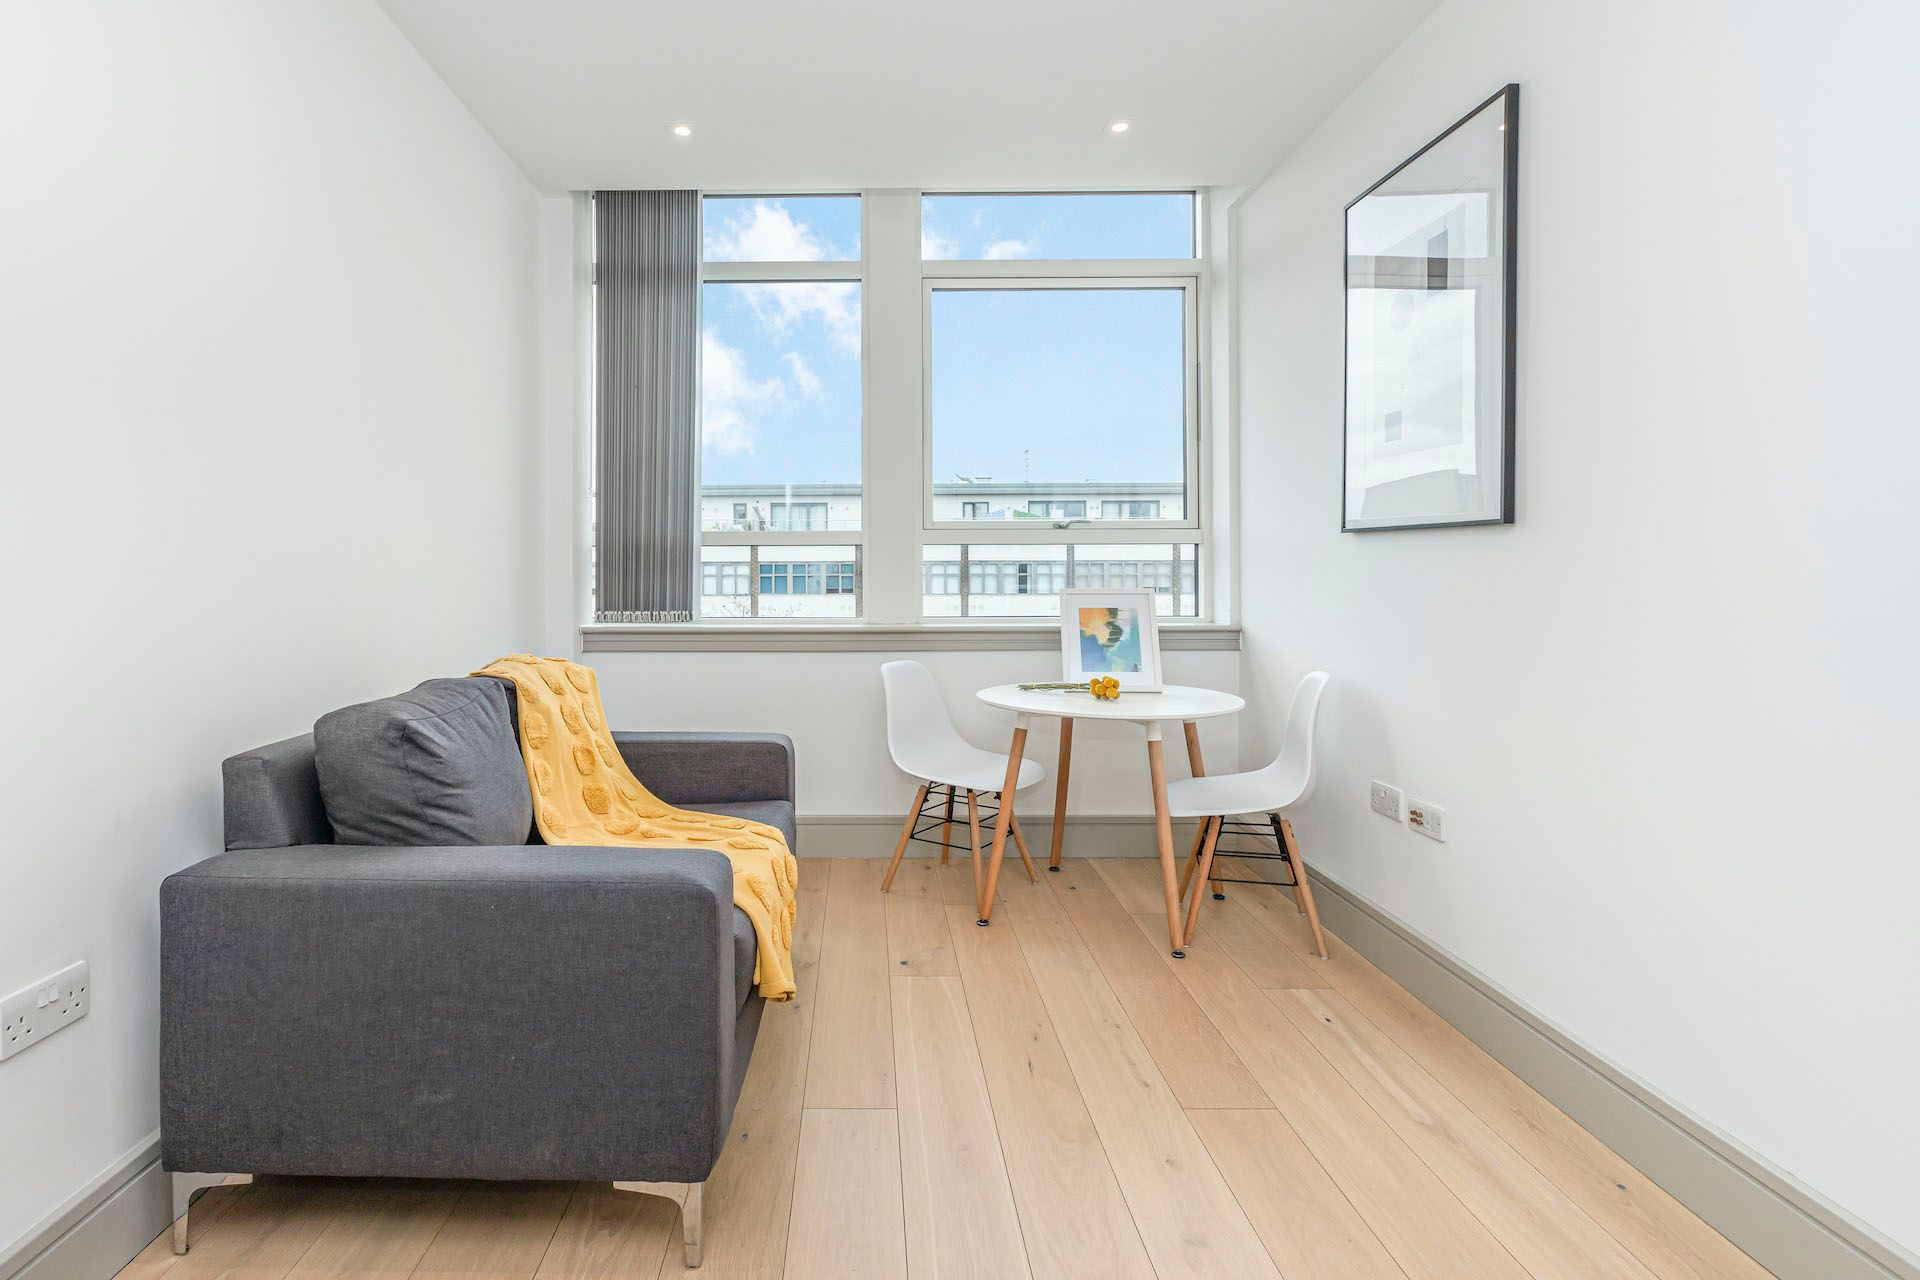 1 Bedroom apartment to rent in London BRO-BH-0143